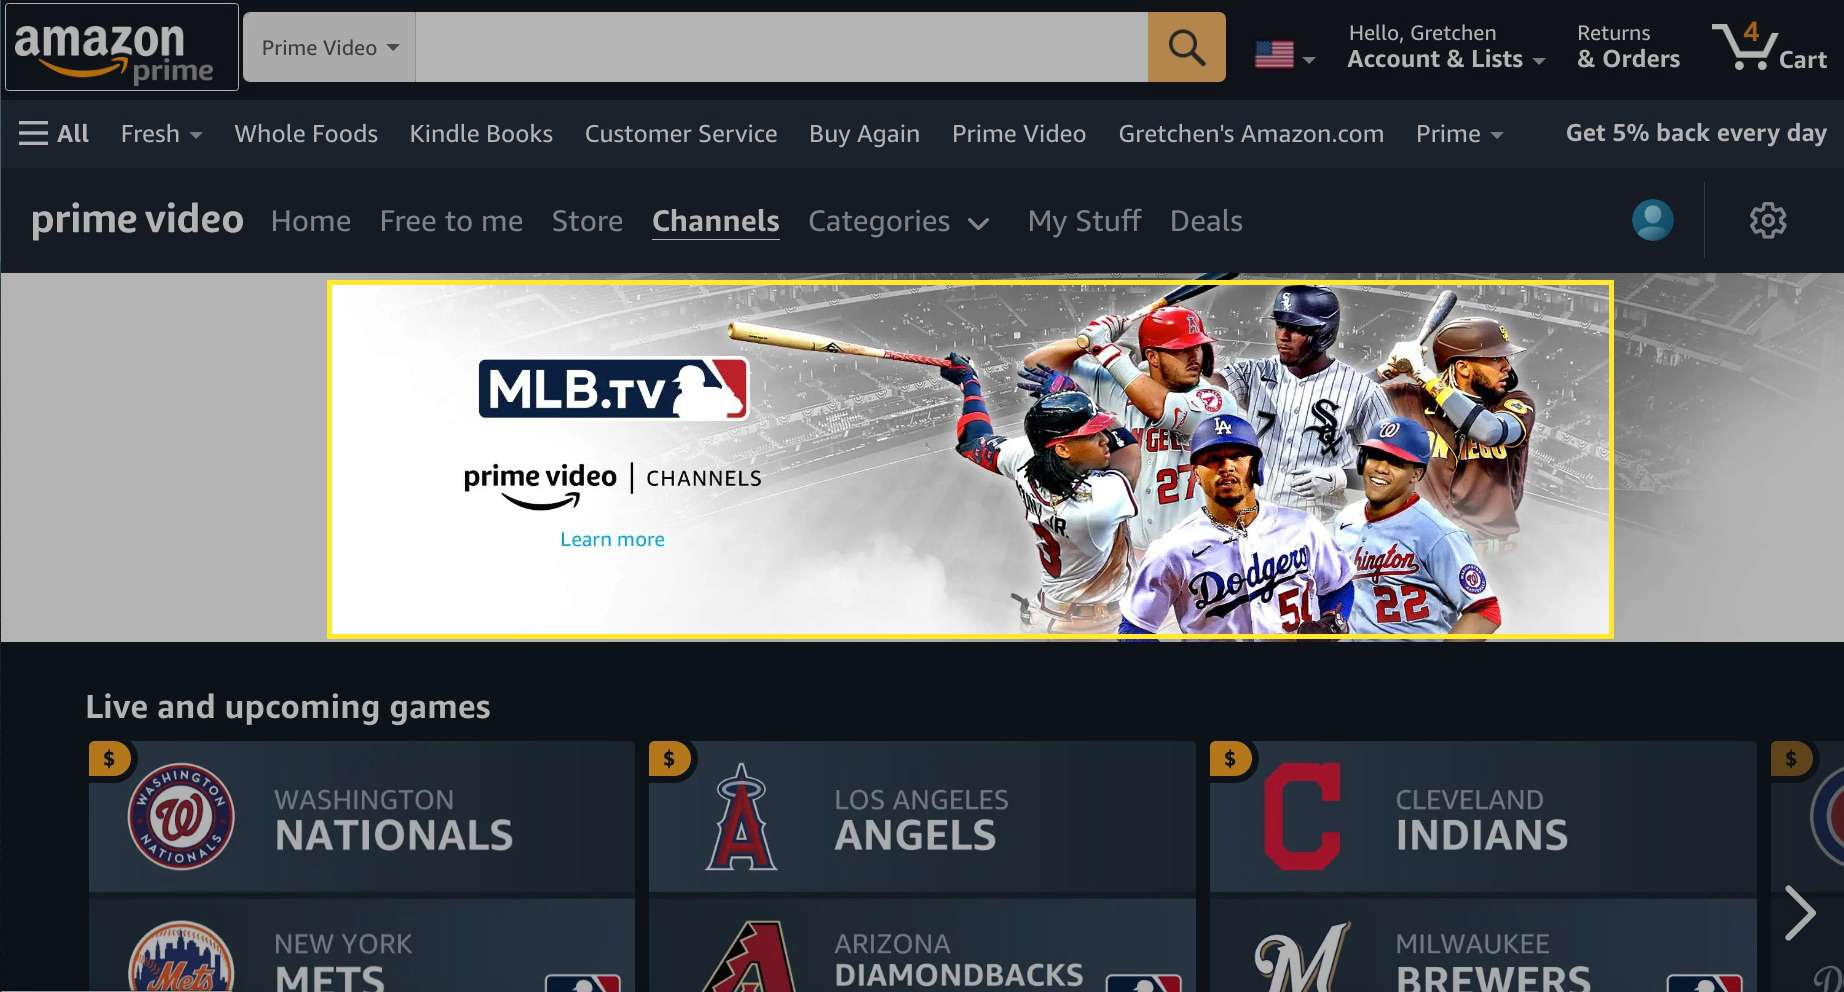 Amazon Prime Video channels with MLB.TV highlighted